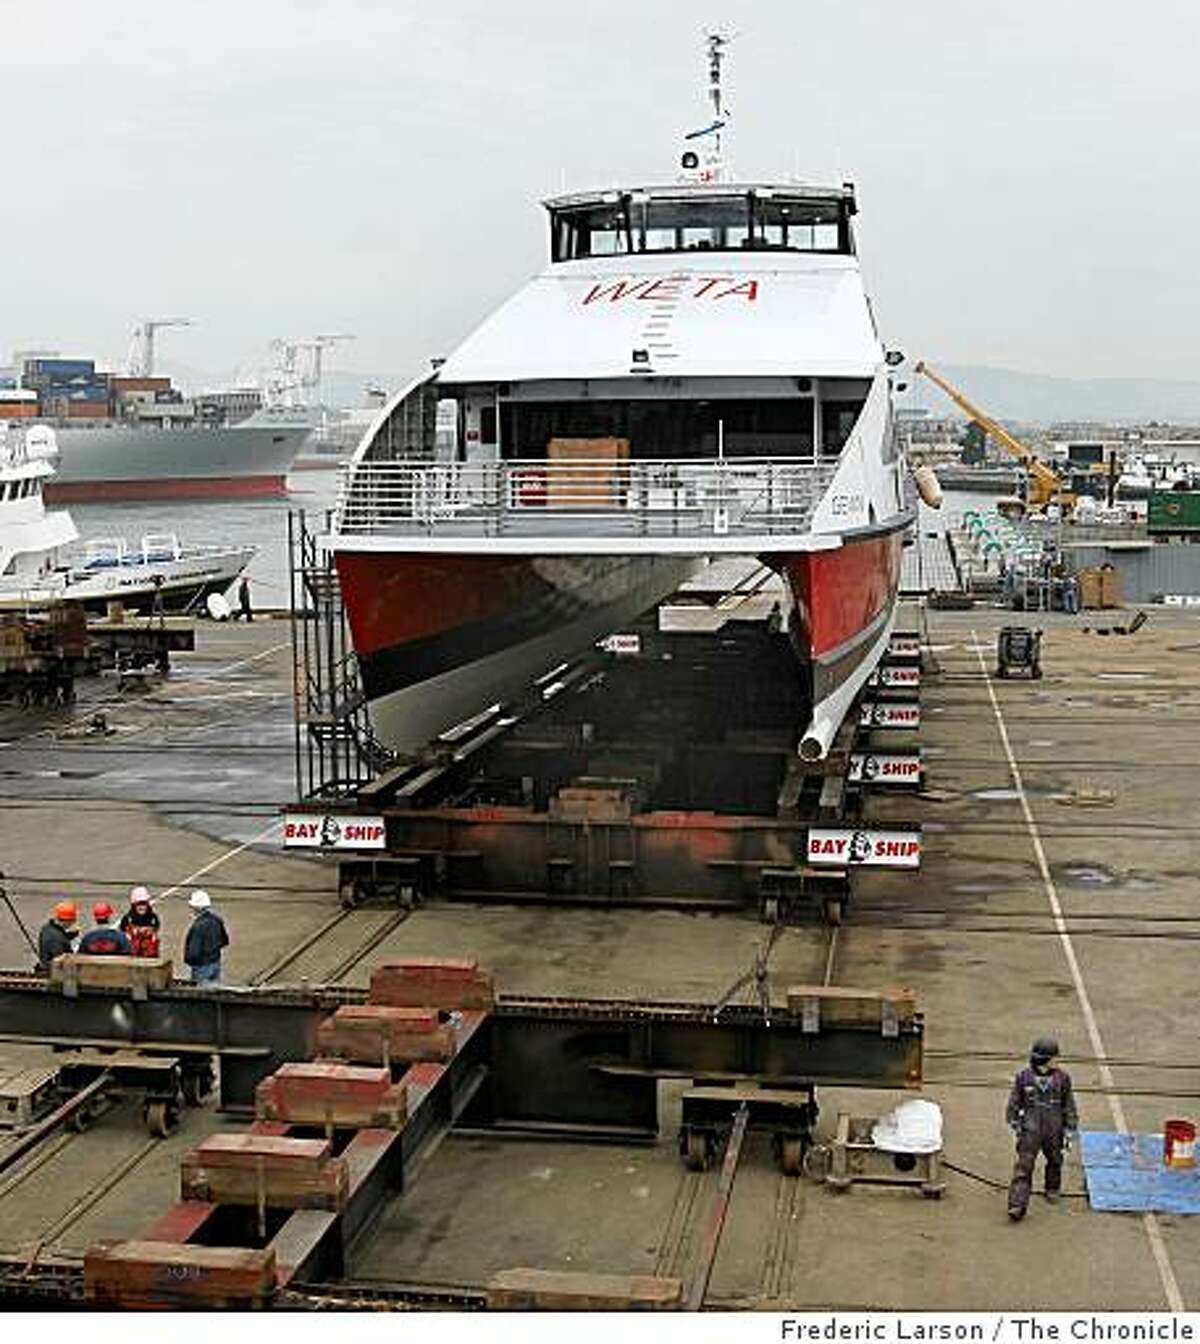 A brand new ferry named Gemeni built for the San Francisco Oakland-Alameda run arrived on November 25, 2008 at a Alameda dry dock.